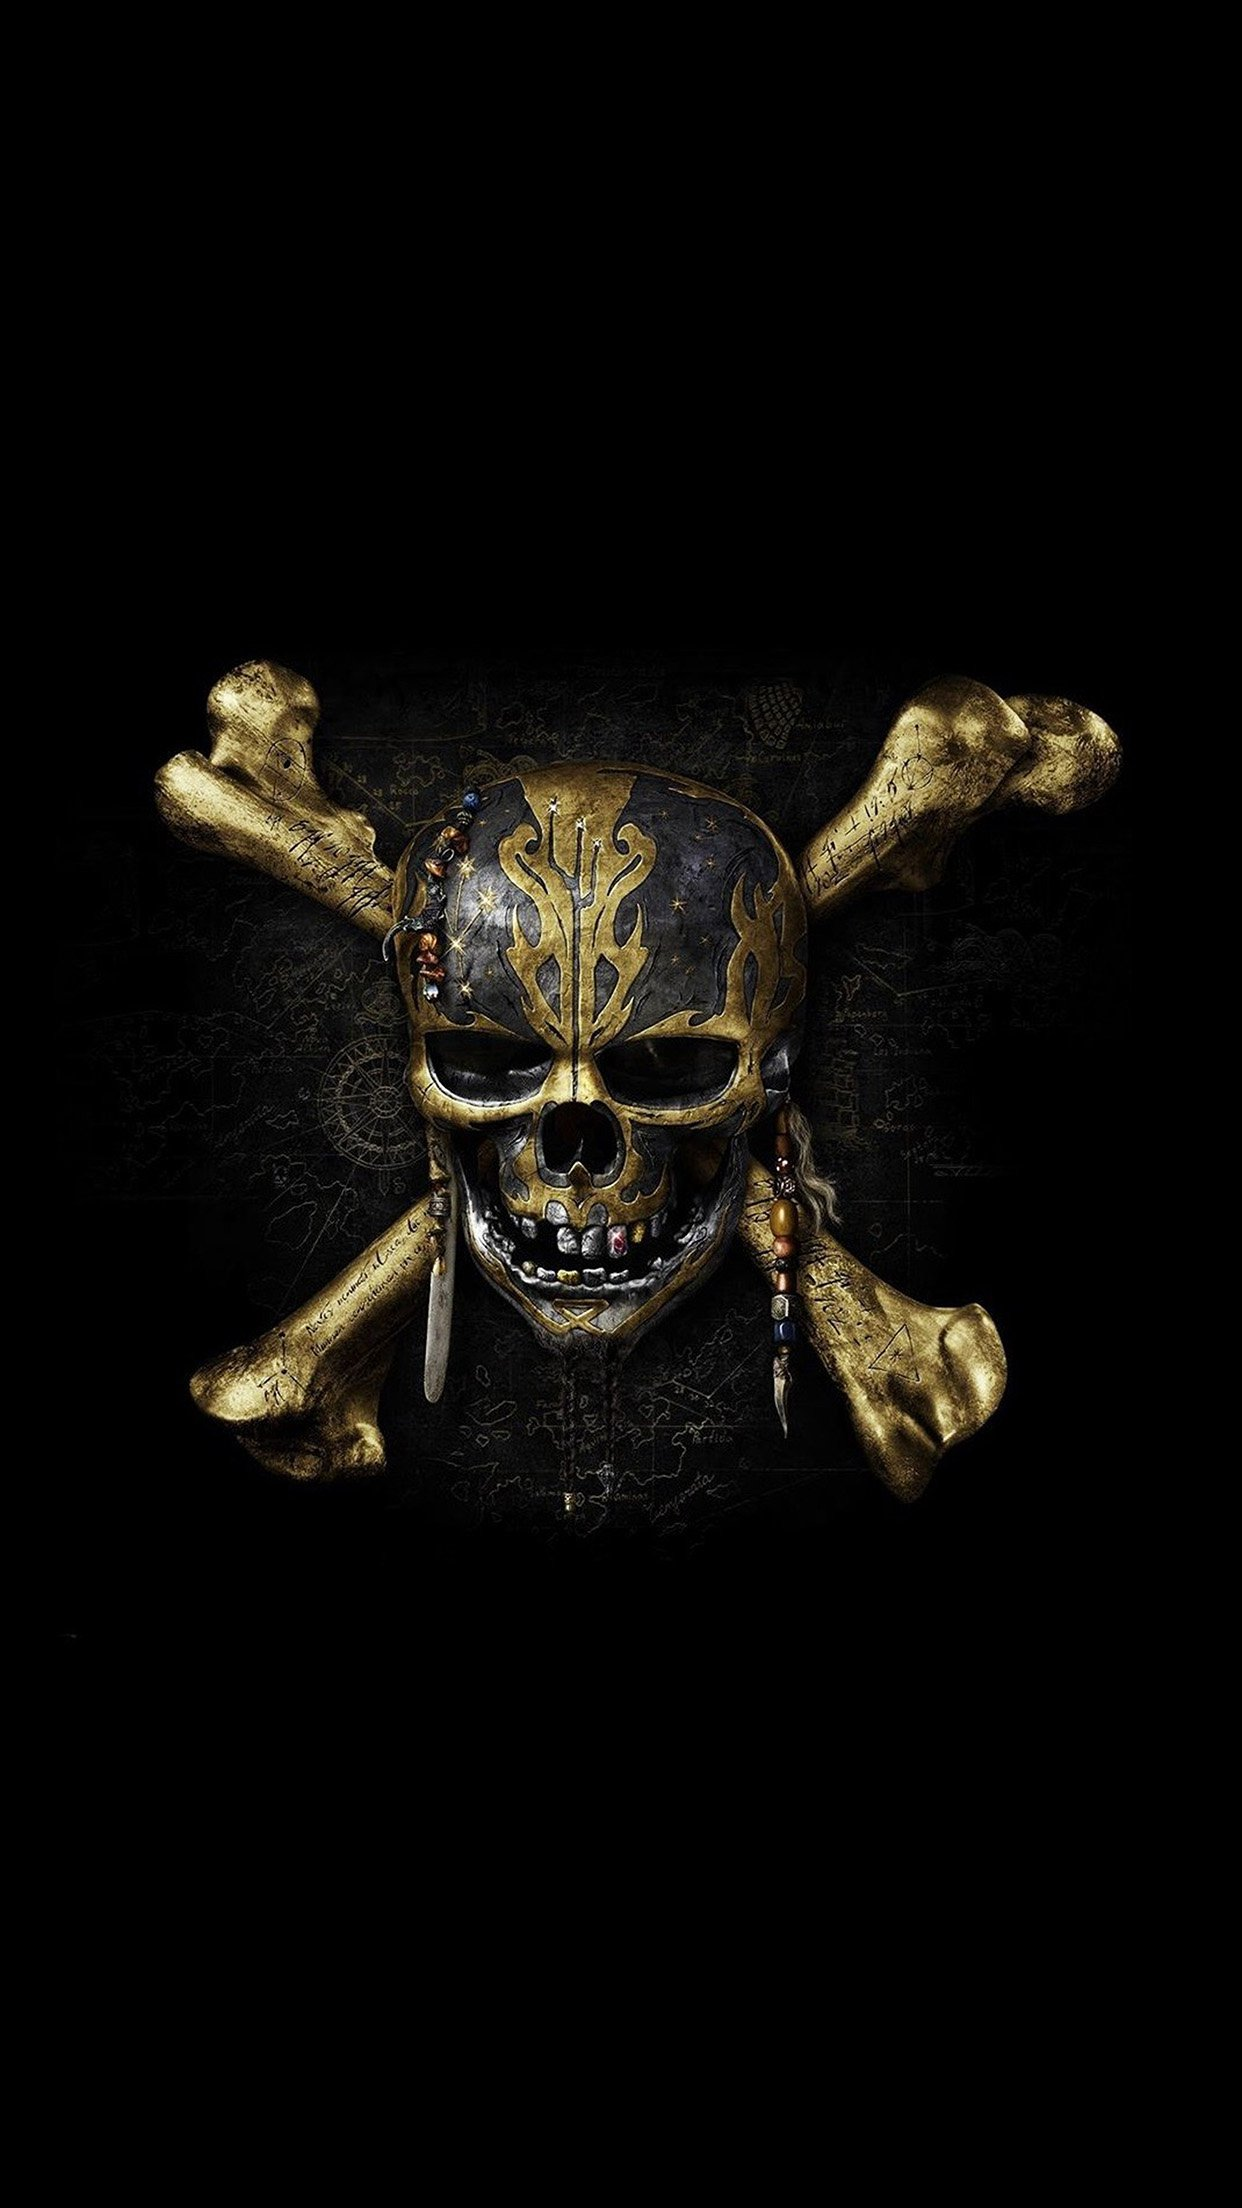 Skull Pirates Dark Wallpaper For Iphone 11 Pro Max X 8 7 6 Free Download On 3wallpapers